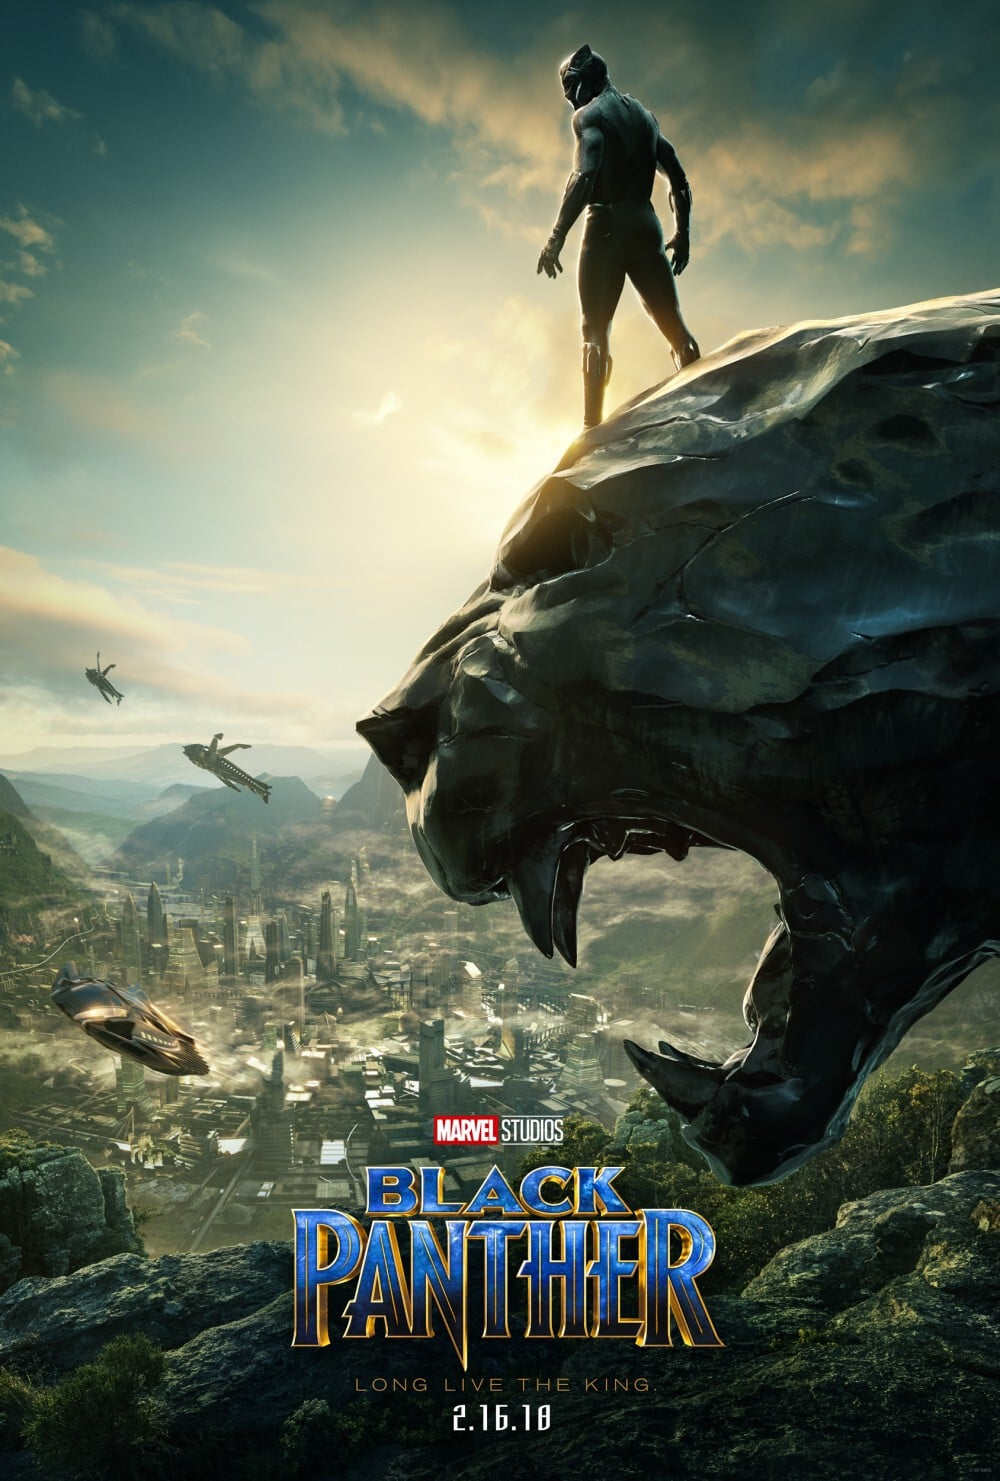 FIRST LOOK: Marvel's Black Panther Full Trailer